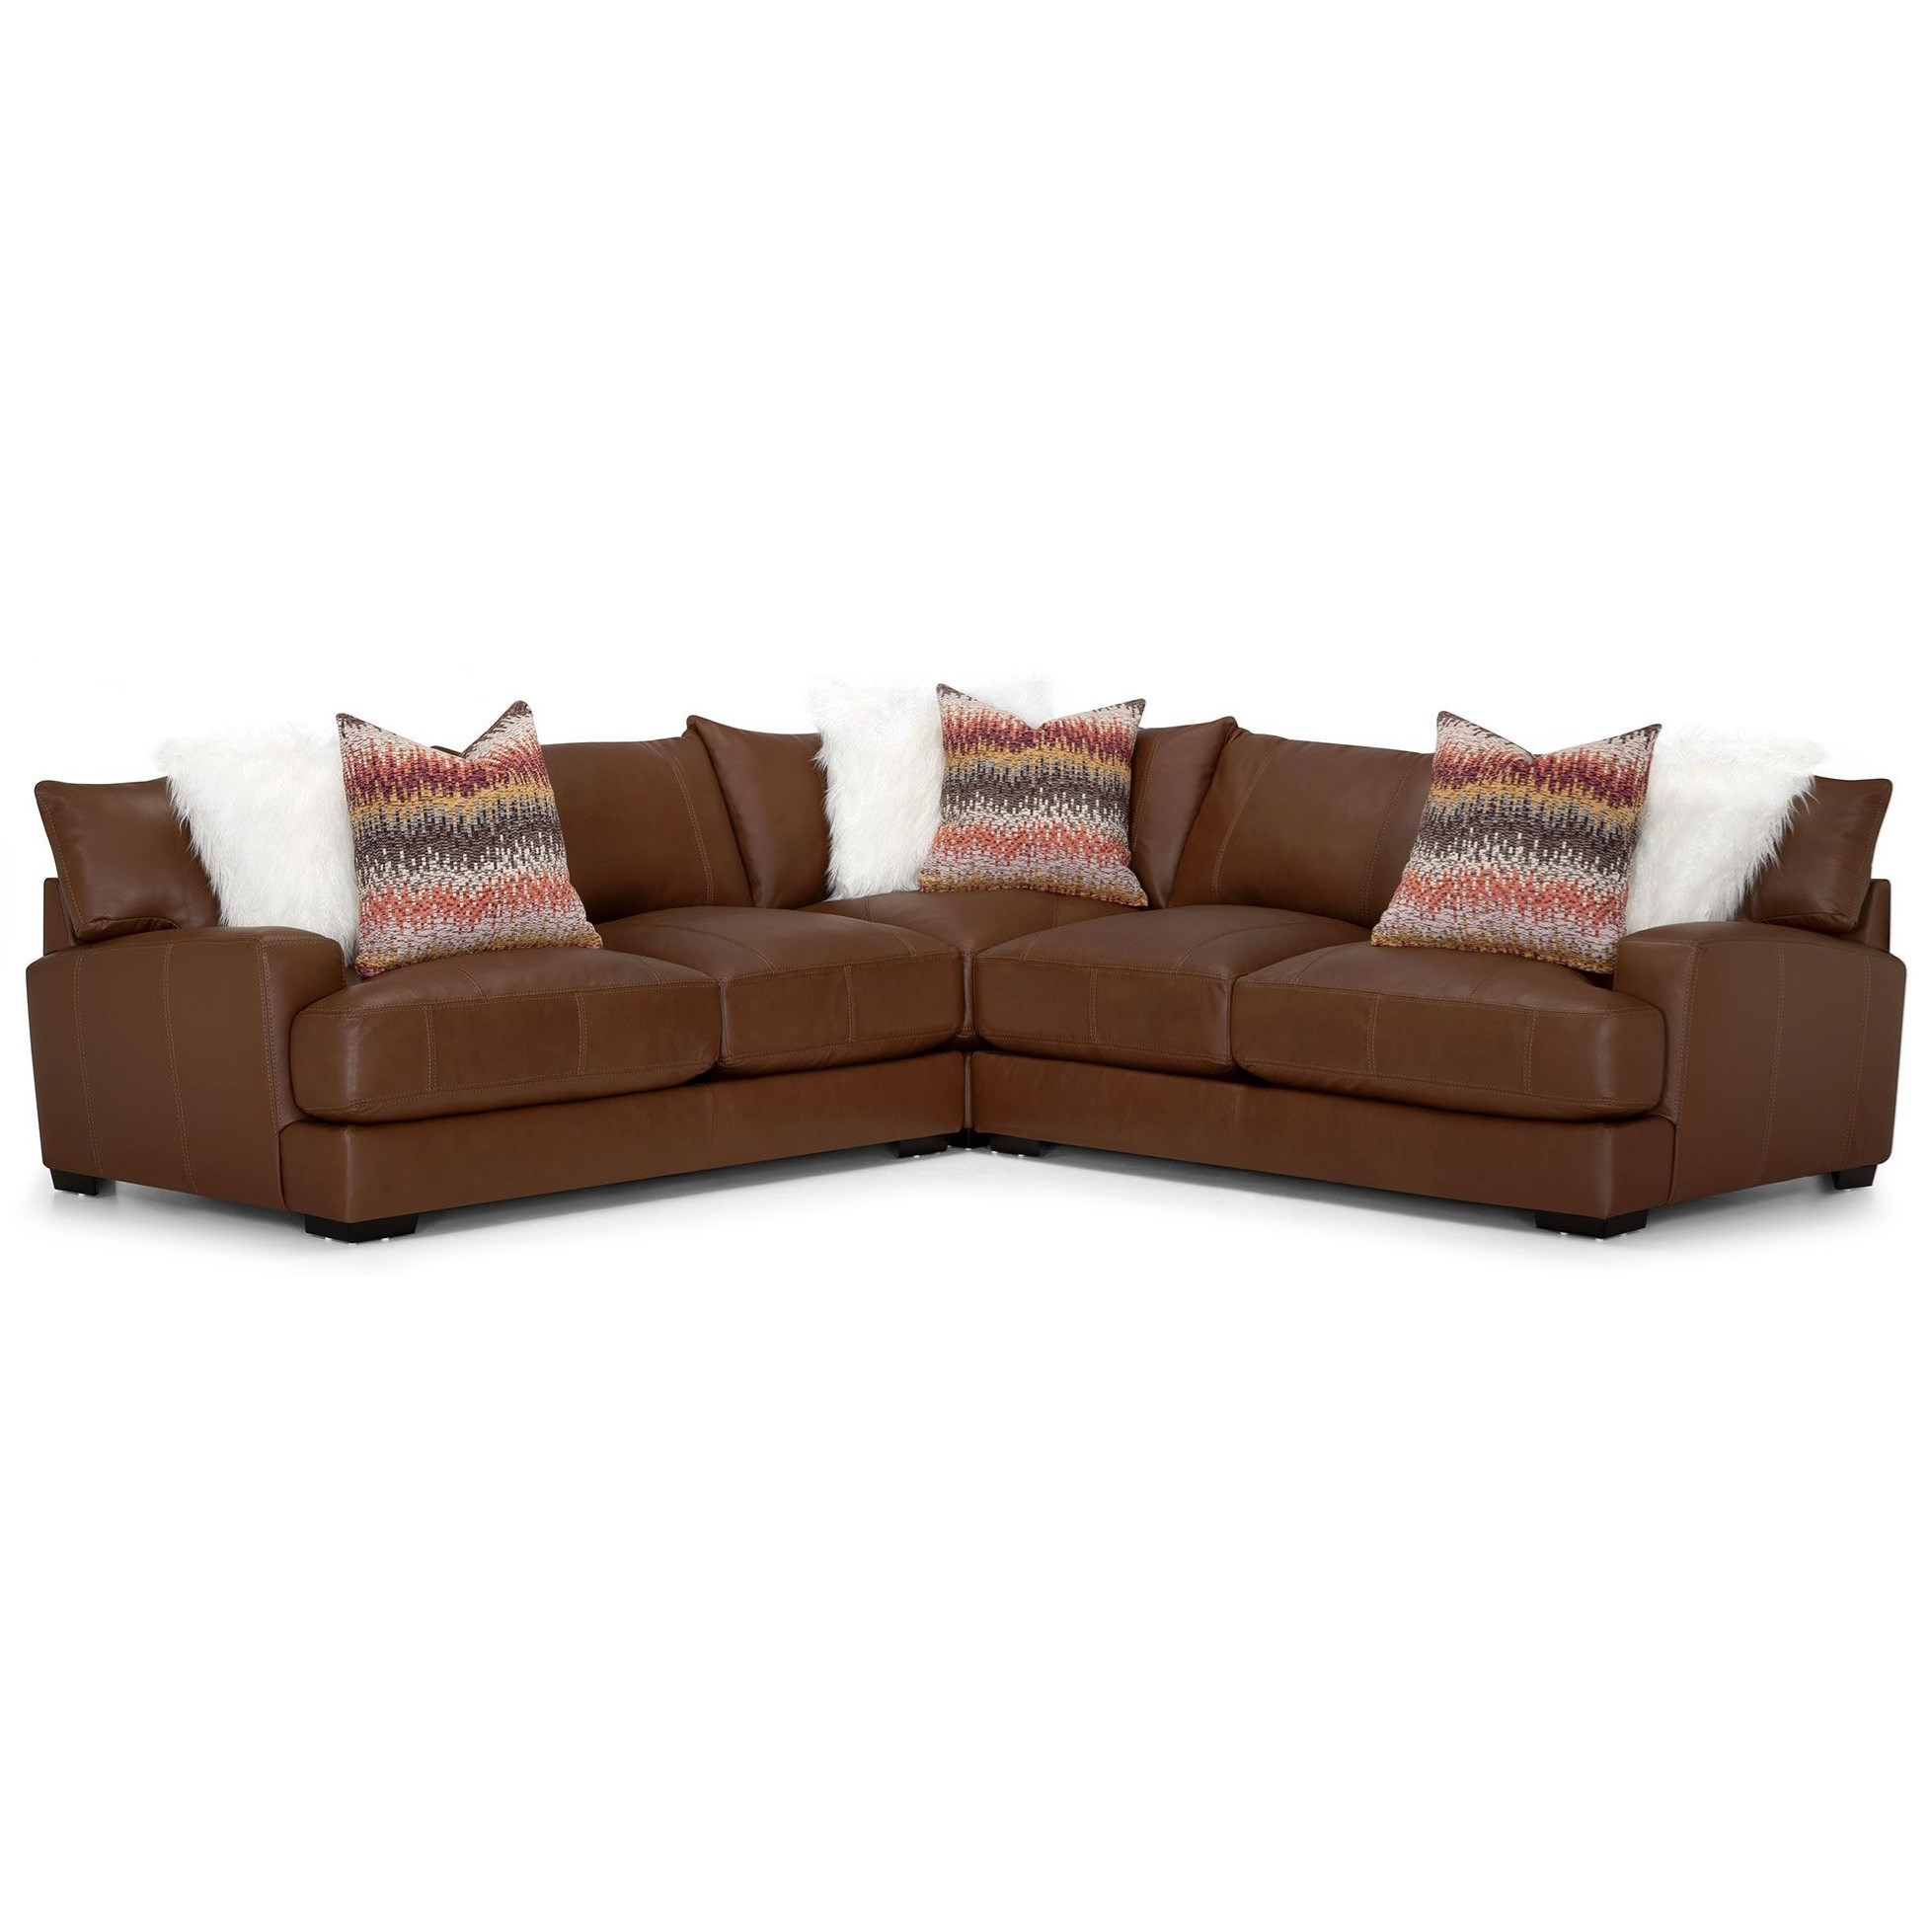 909 Leather Match 3pc Sectional by Franklin at Wilcox Furniture